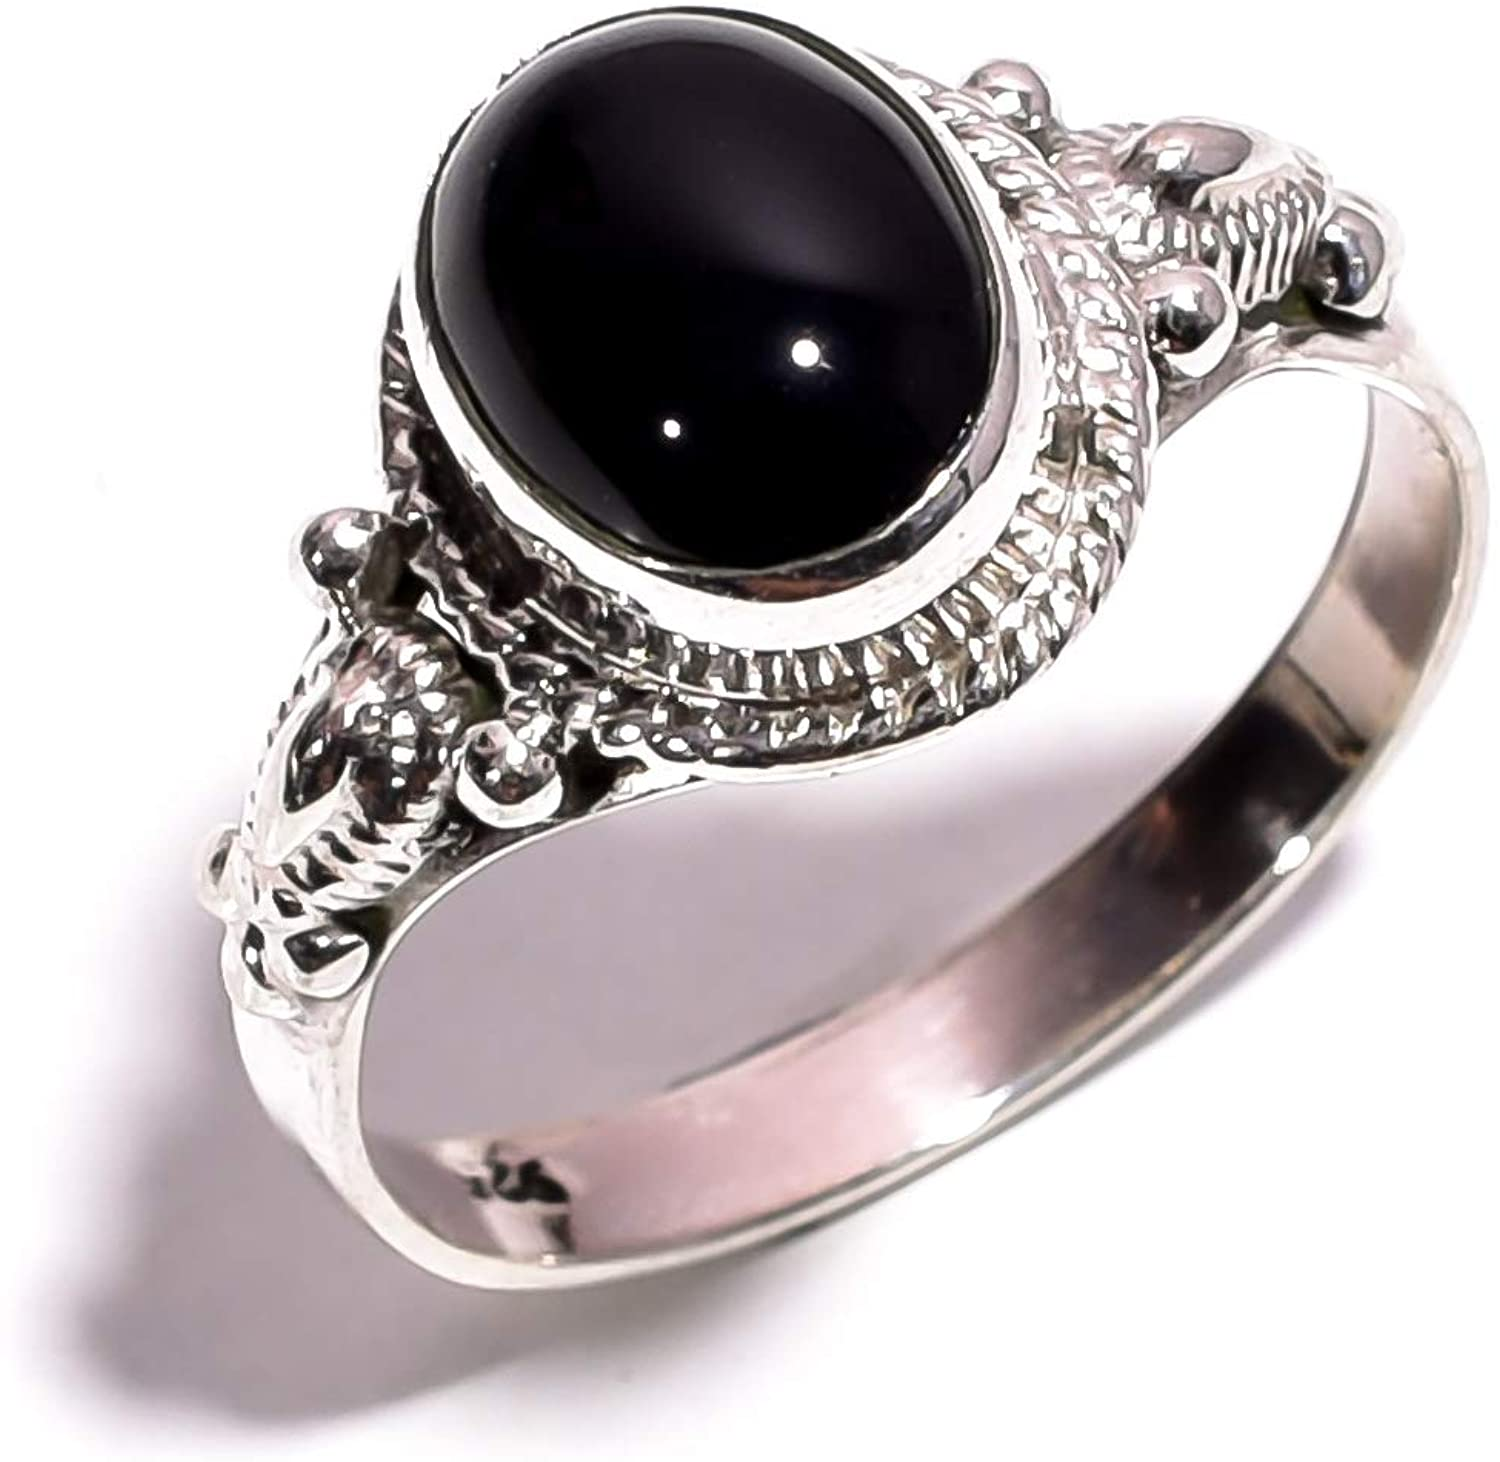 mughal gems & jewellery 925 Sterling Silver Ring Natural Black Onyx Gemstone Fine Jewelry Ring for Women and Girls (Size 8 U.S)